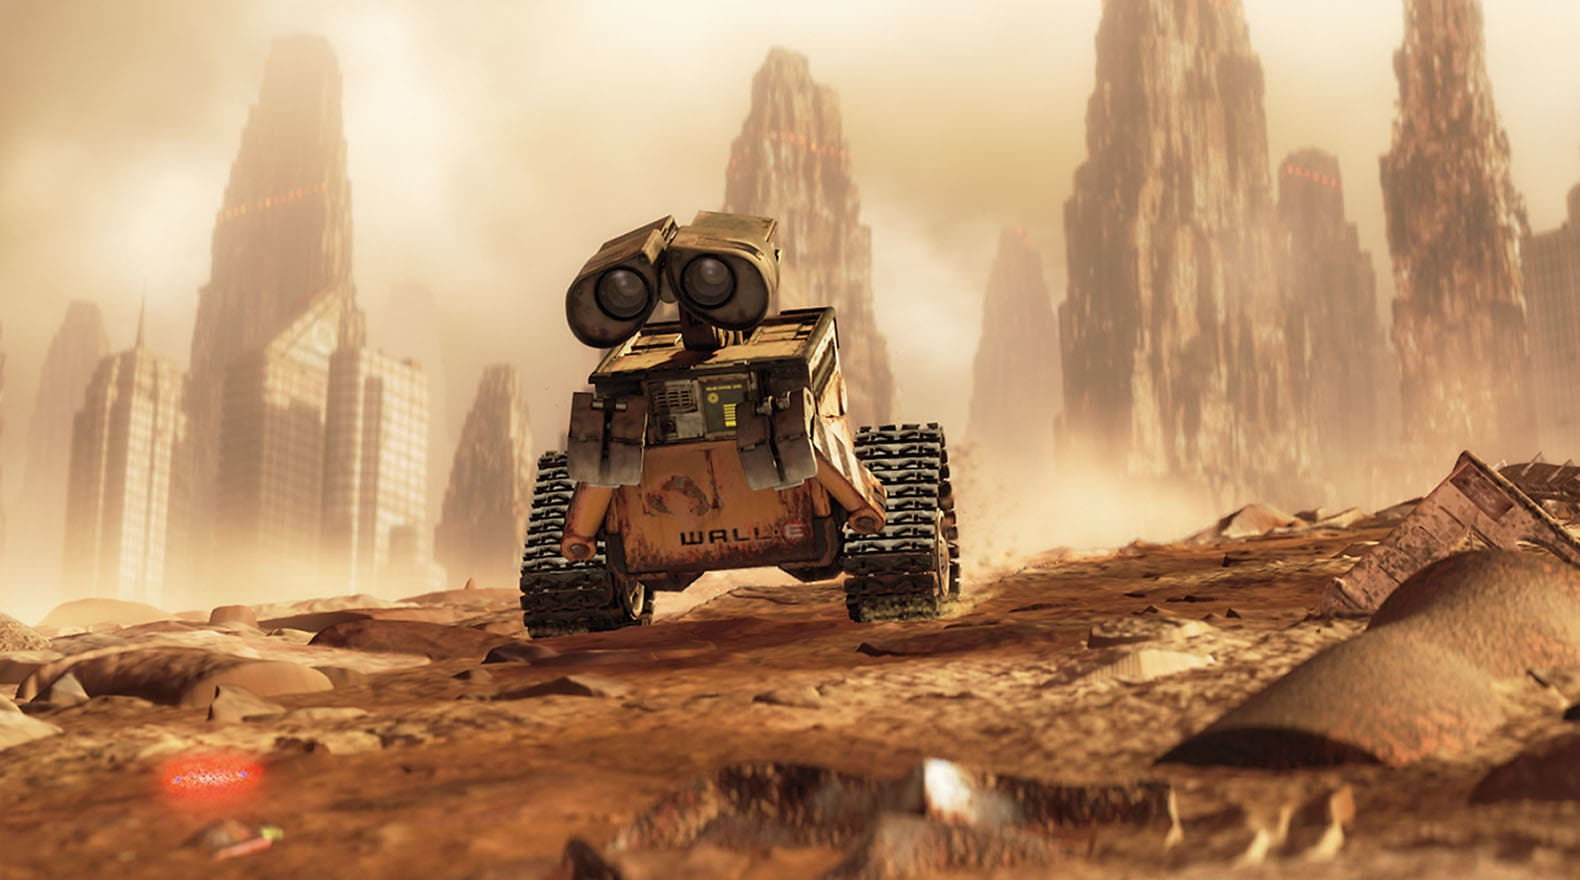 """The first time WALL•E meets EVE, she's all business, from the movie """"Wall-E"""""""